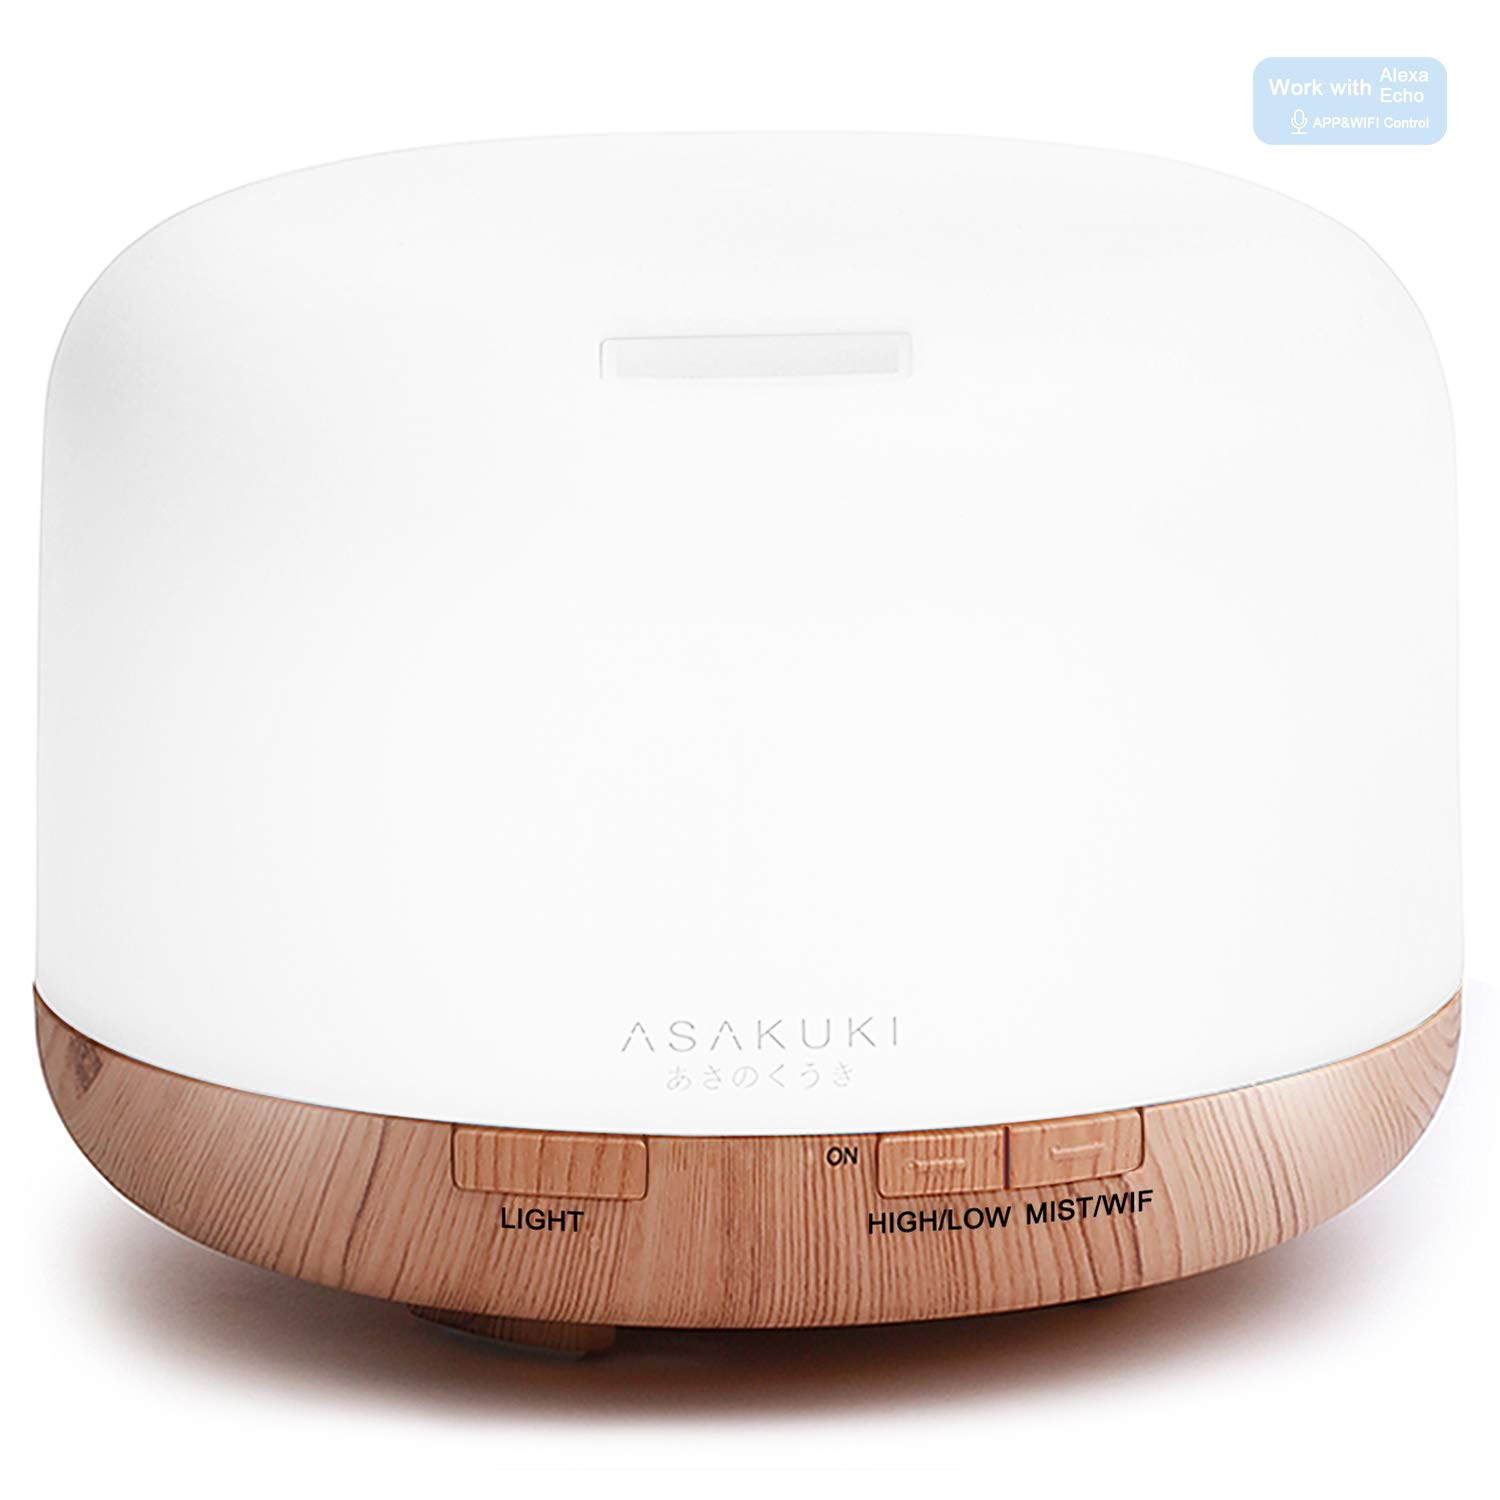 2018 Essential Oil Diffuser - Echo Alexa Control 500ml ASAKUKI 5 in 1 Wi-Fi Smart Ultrasonic Aromatherapy Fragrant Oil Vaporizer Humidifier, Timer and Auto-Off Safety Switch, 7 LED Light Colors